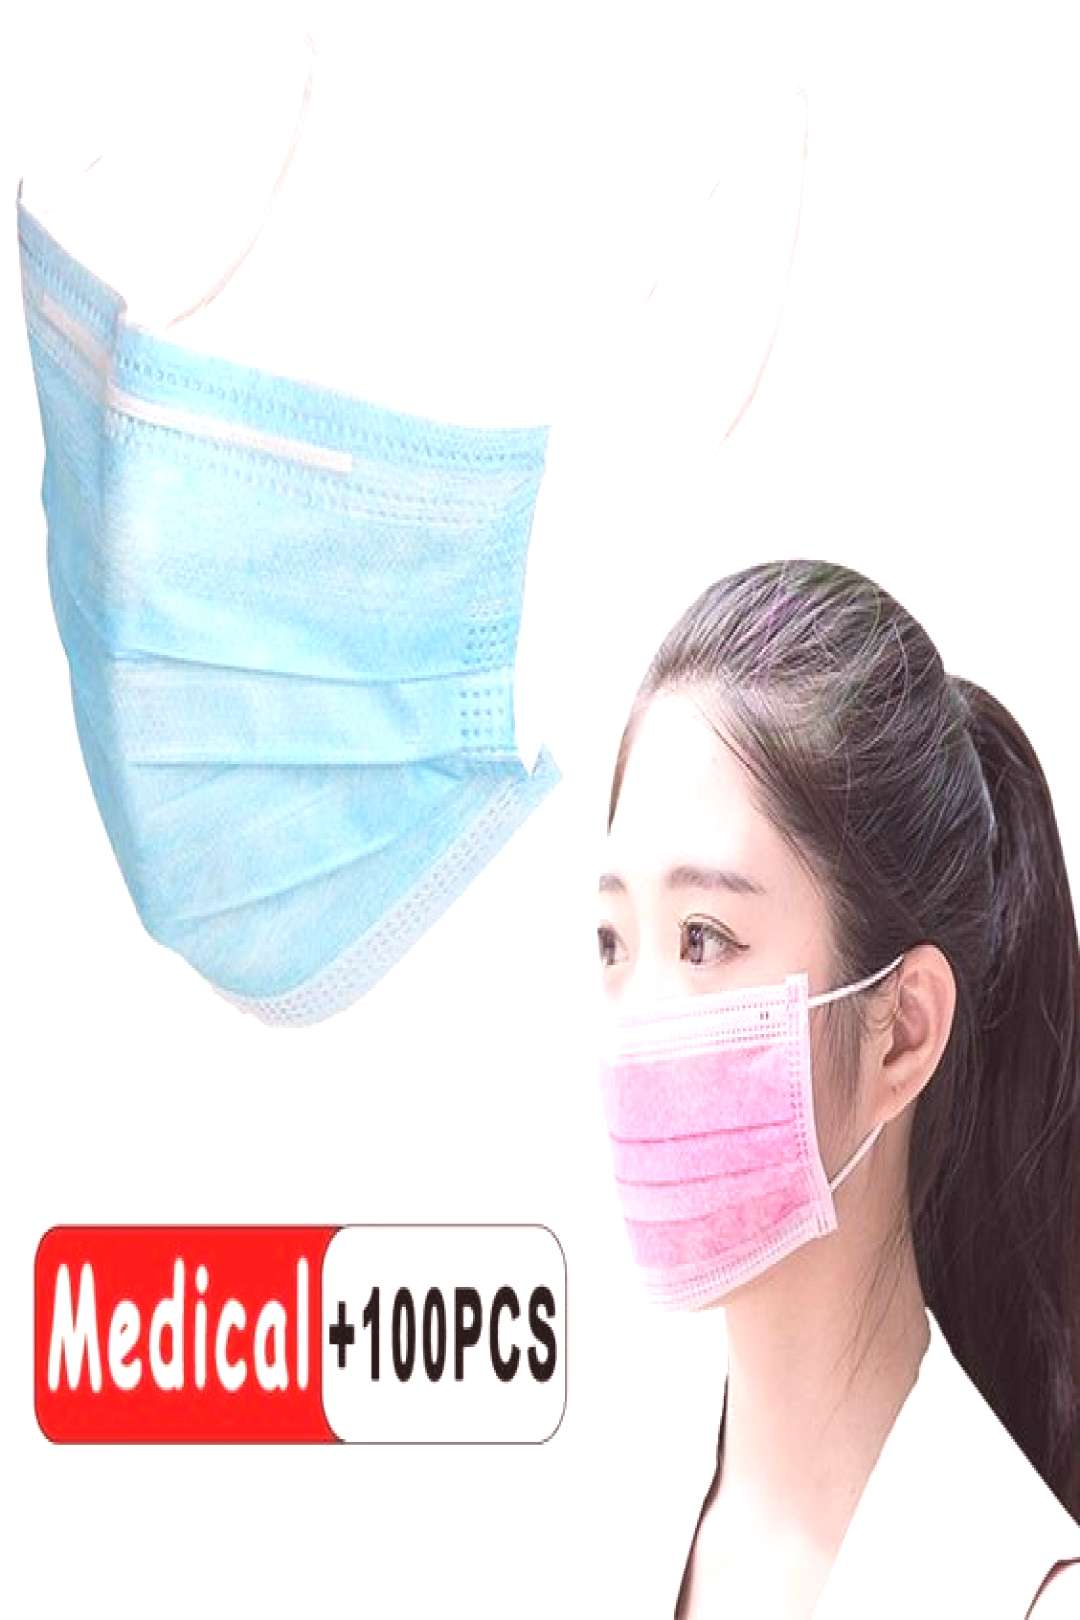 49 Profession Medical Mask Medical Surgical 3-Ply click for more ... Profession Medical Mask Medica